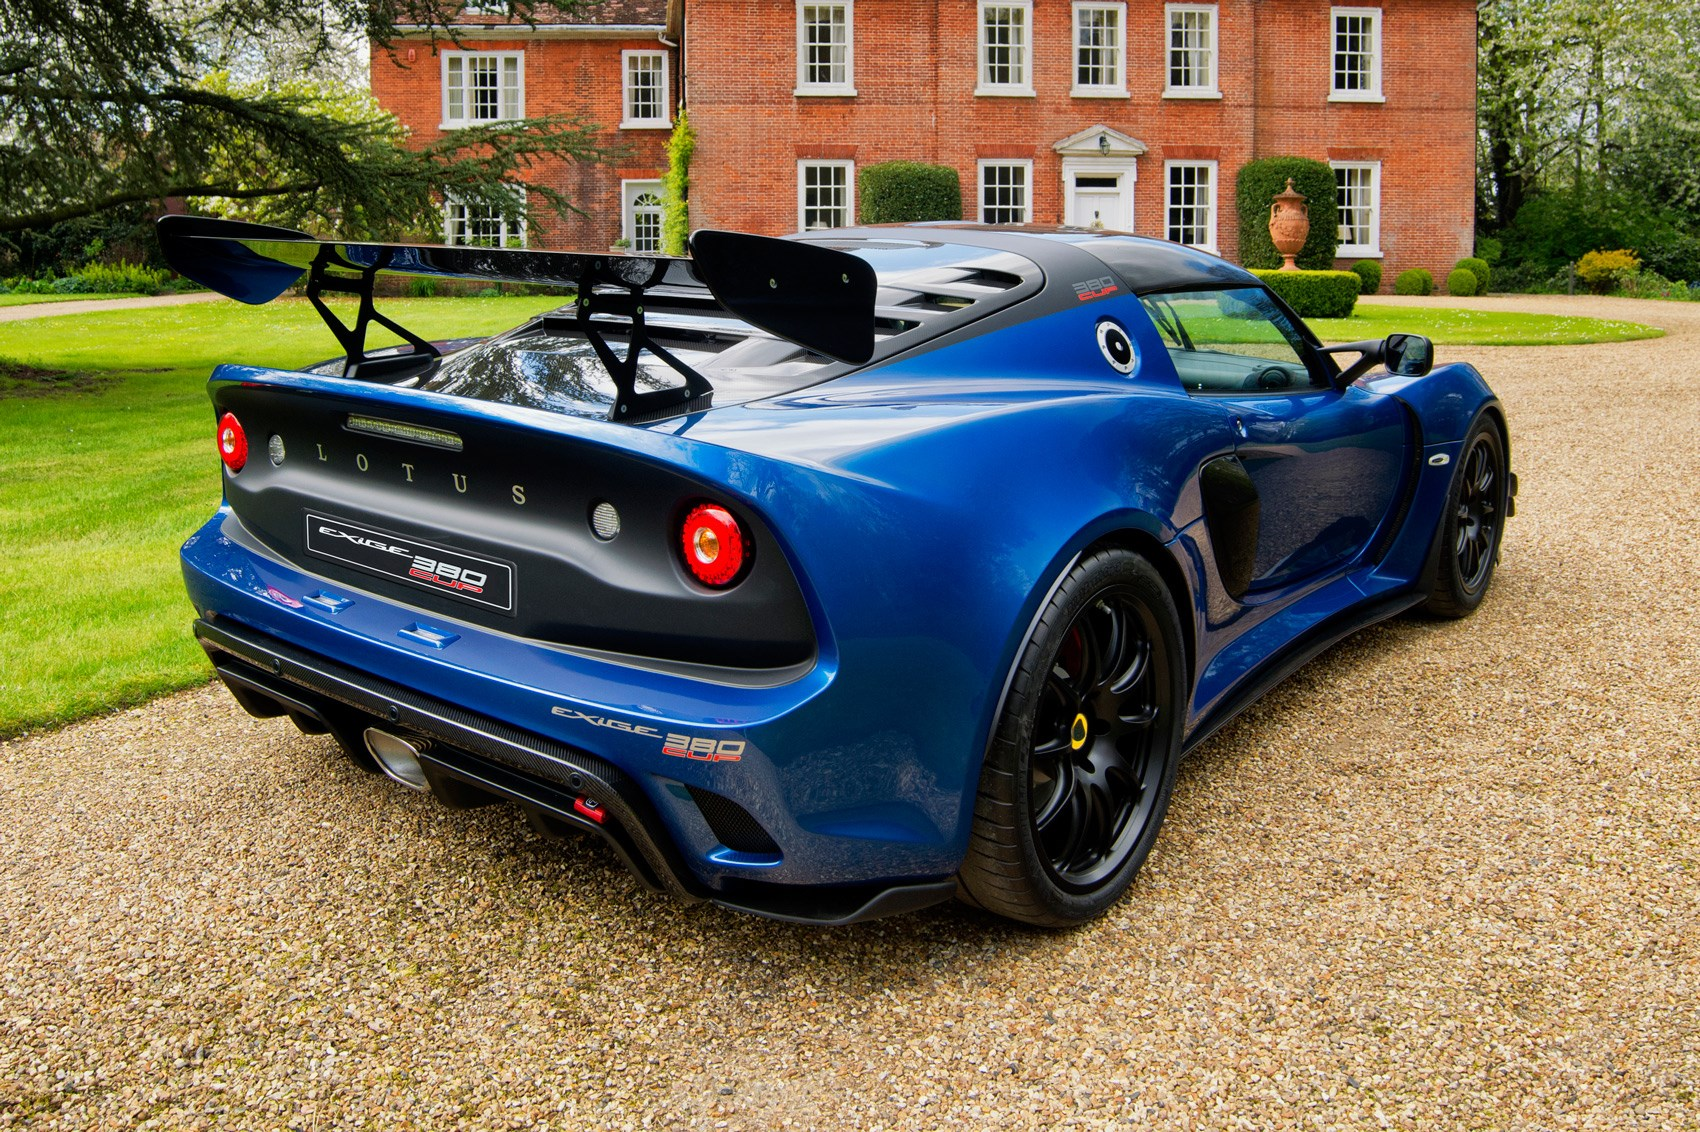 Lotus Exige Cup 380: The Fastest Road-going Exige Yet